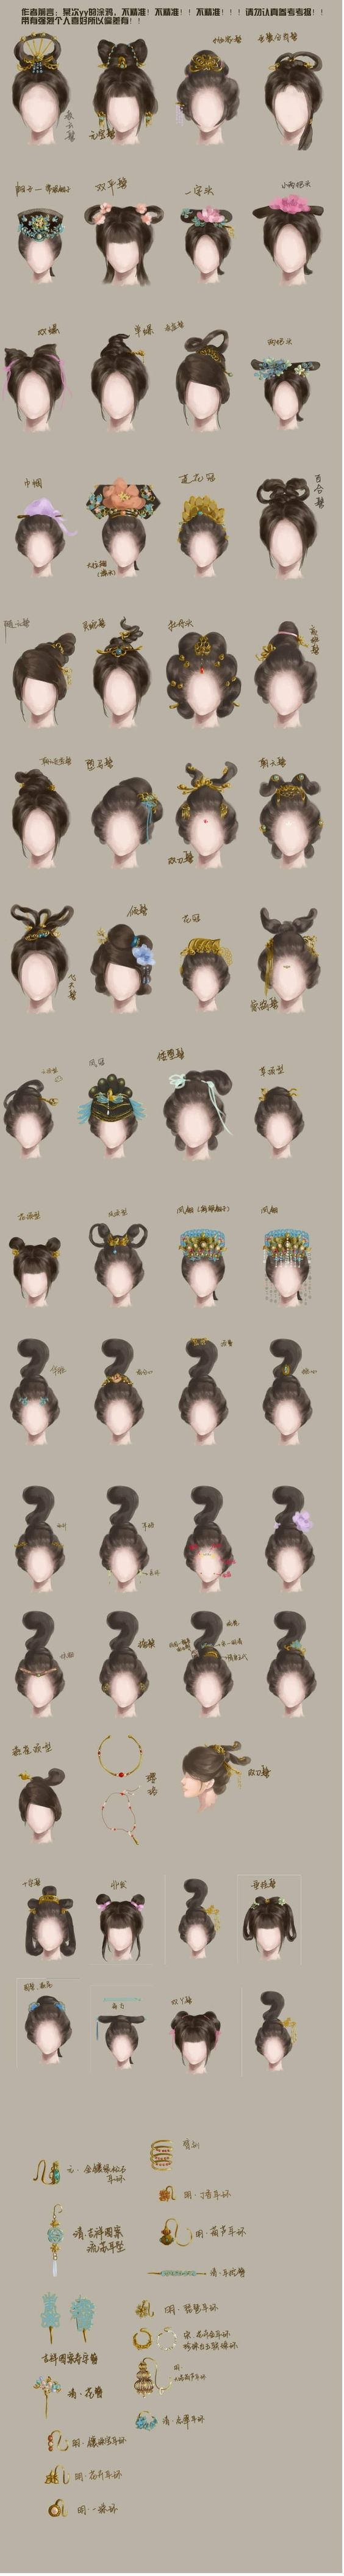 history of chinese hairstyles